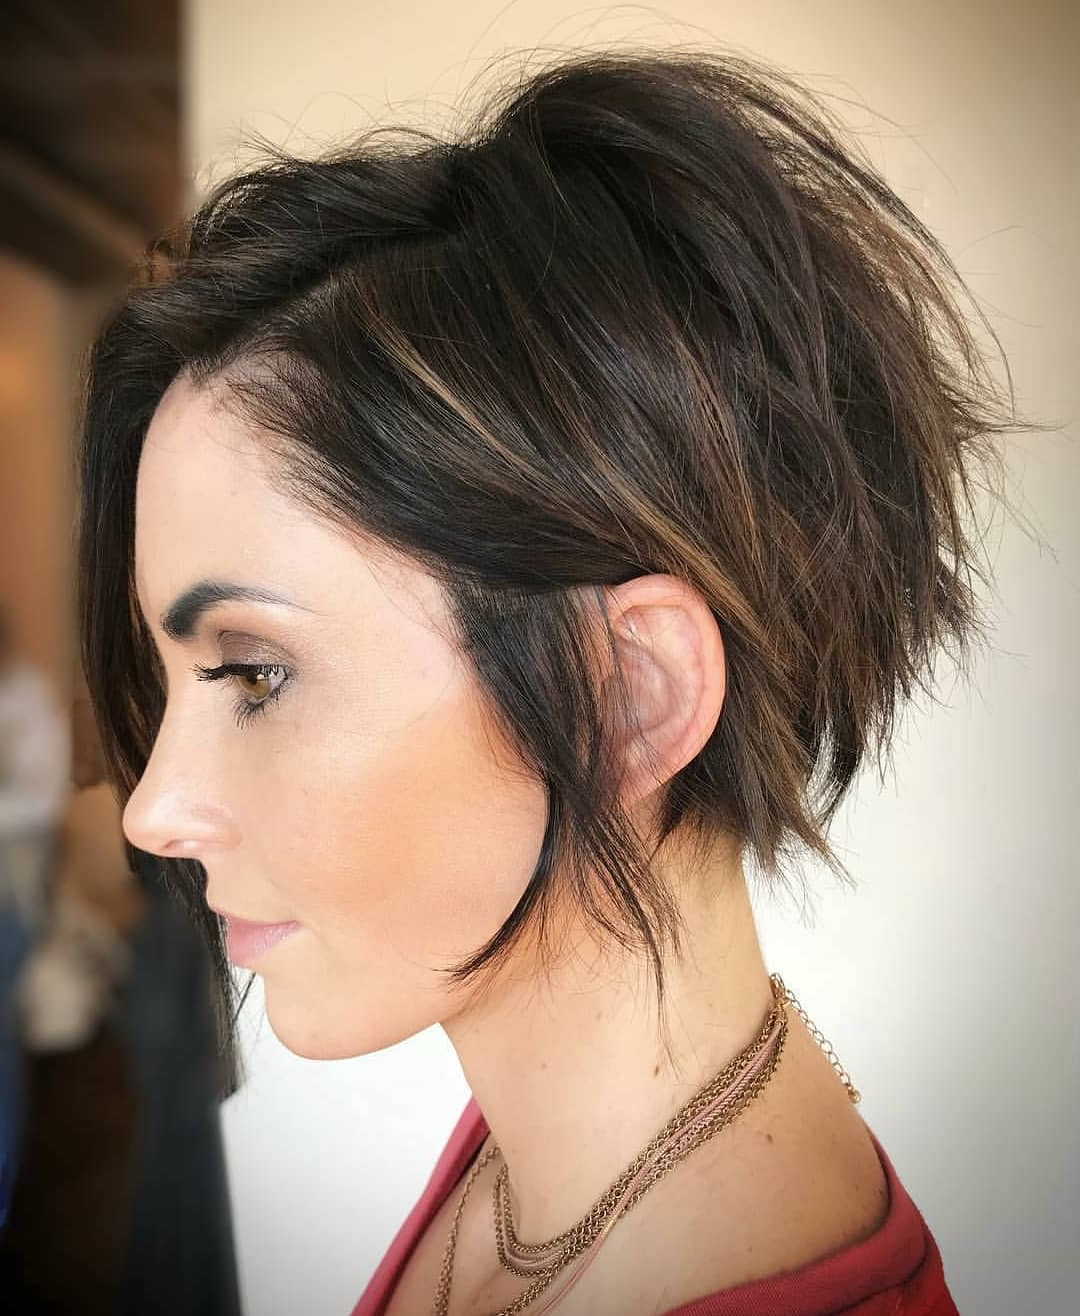 10 Fab Short Hairstyles With Texture & Color, 2018 Women Short Haircuts In Short Haircuts For Curvy Women (View 2 of 25)